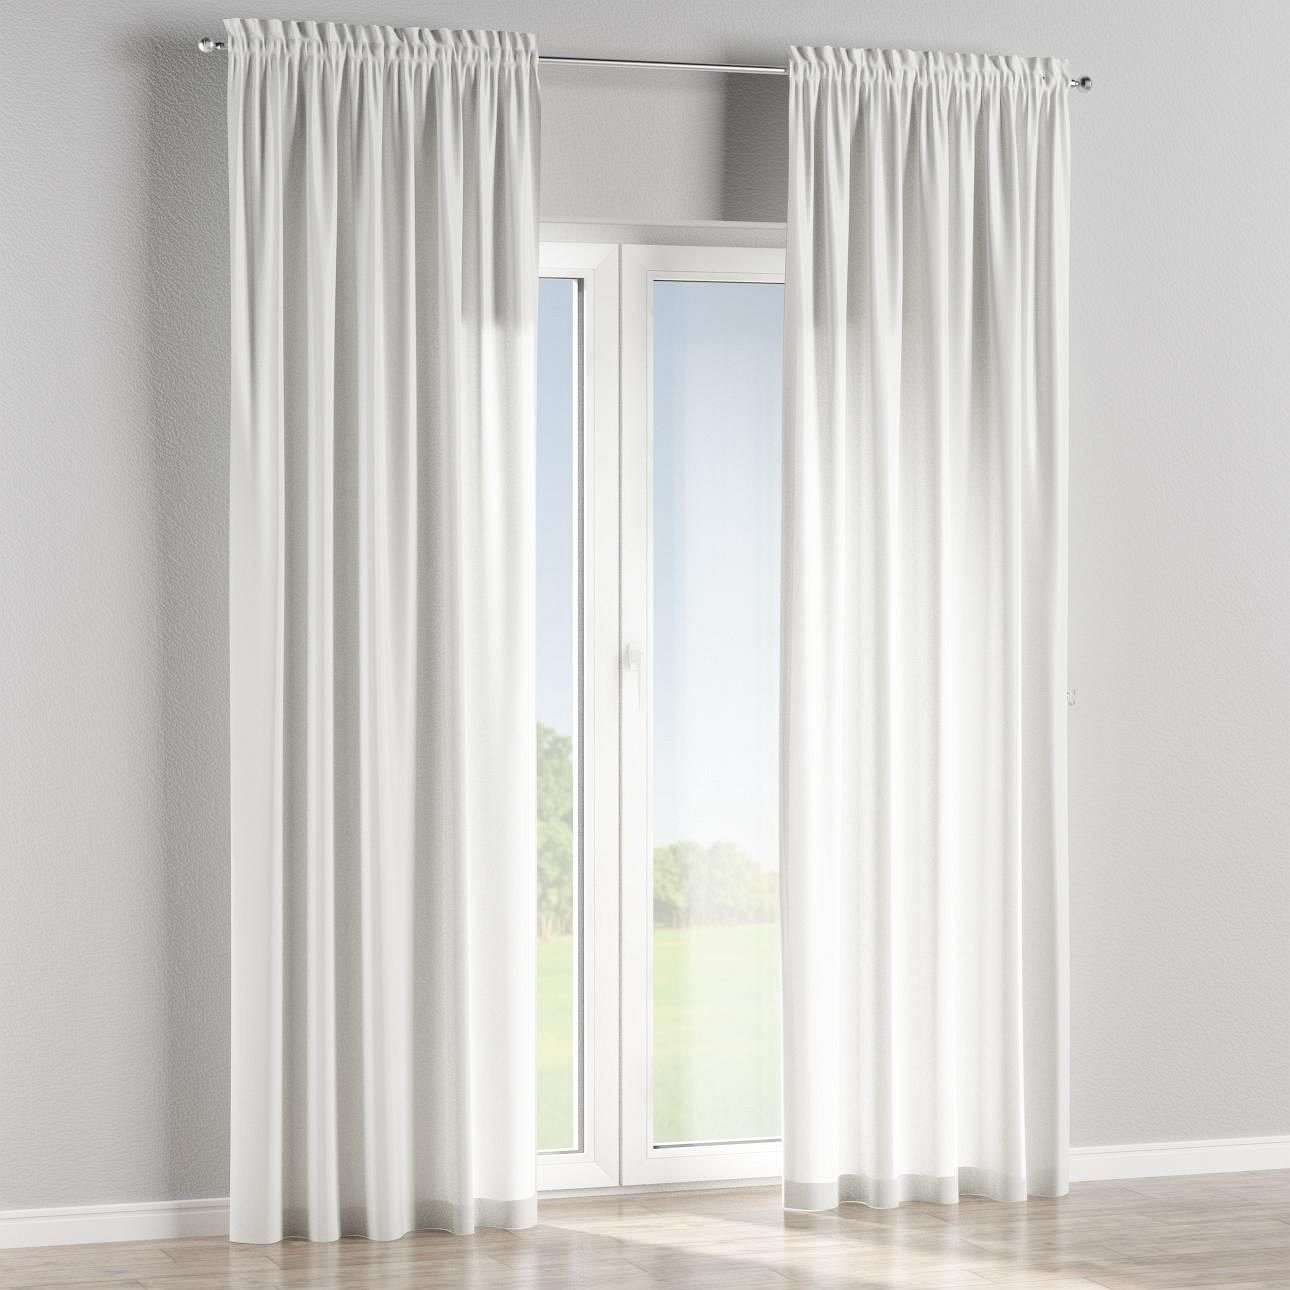 Slot and frill lined curtains in collection Flowers, fabric: 303-01